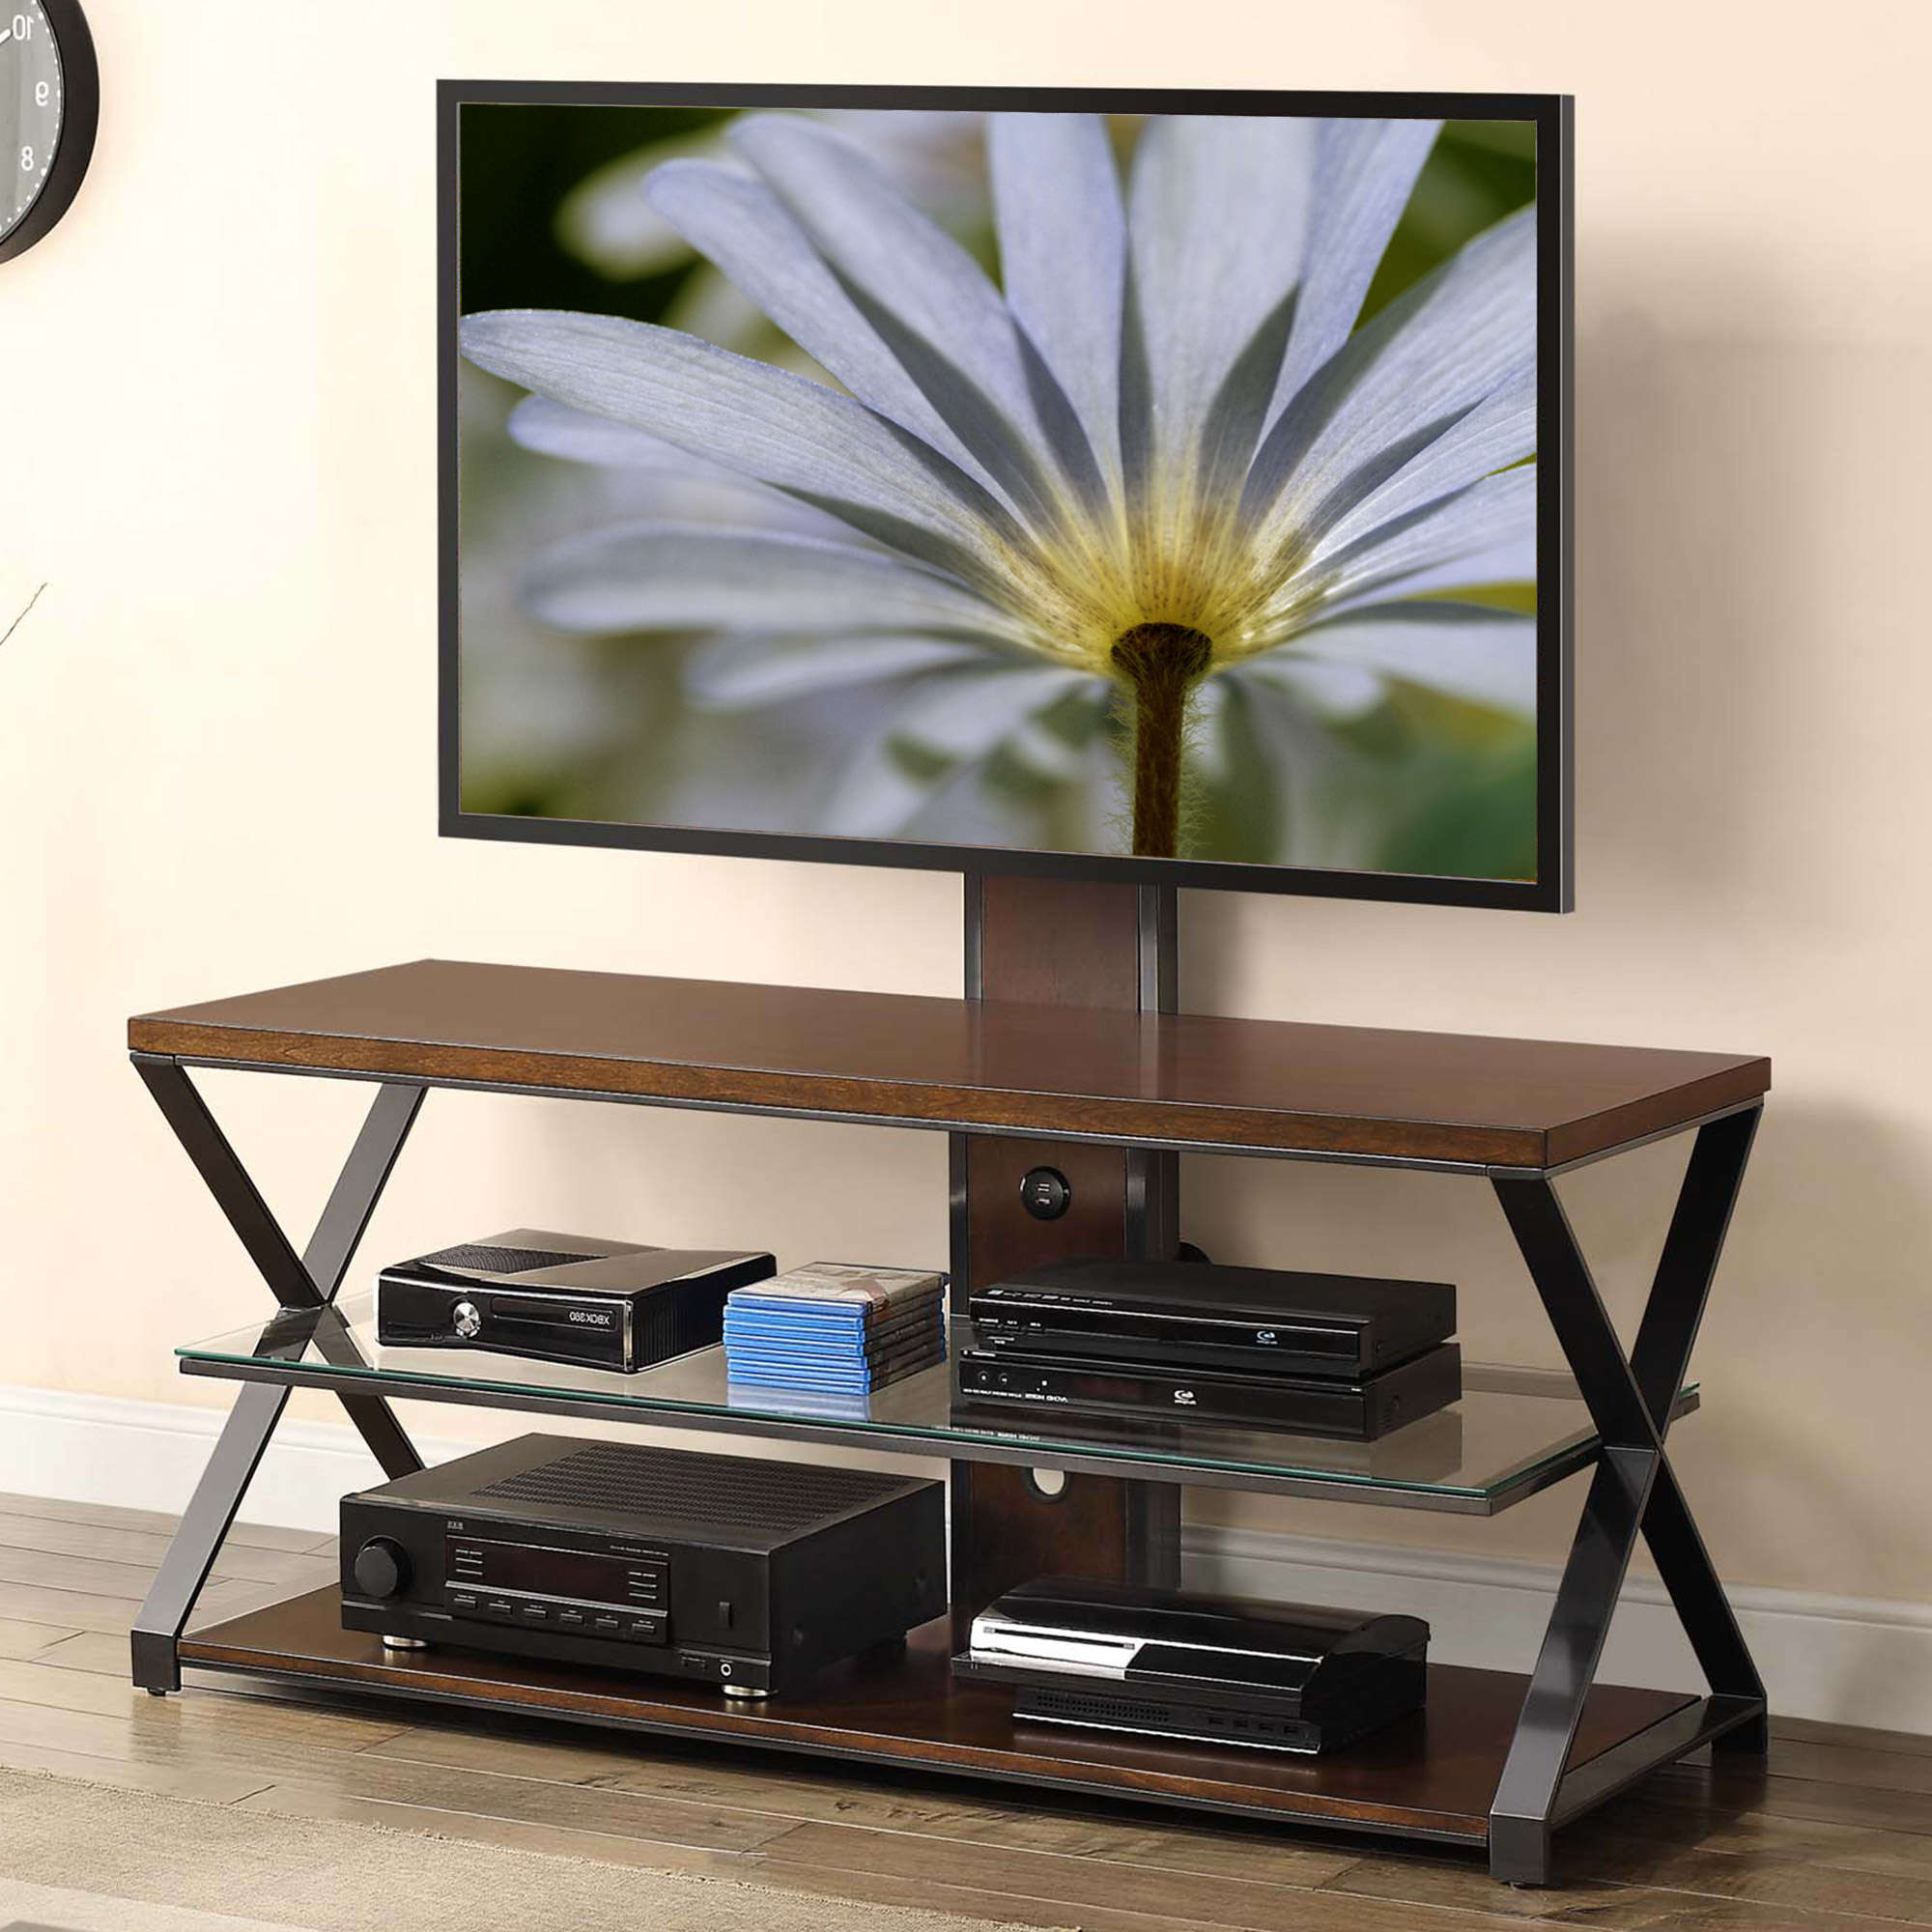 "Jaxon 3 In 1 Cognac Tv Stand For Tvs Up To 70"" – Walmart Intended For Jaxon 71 Inch Tv Stands (View 3 of 20)"